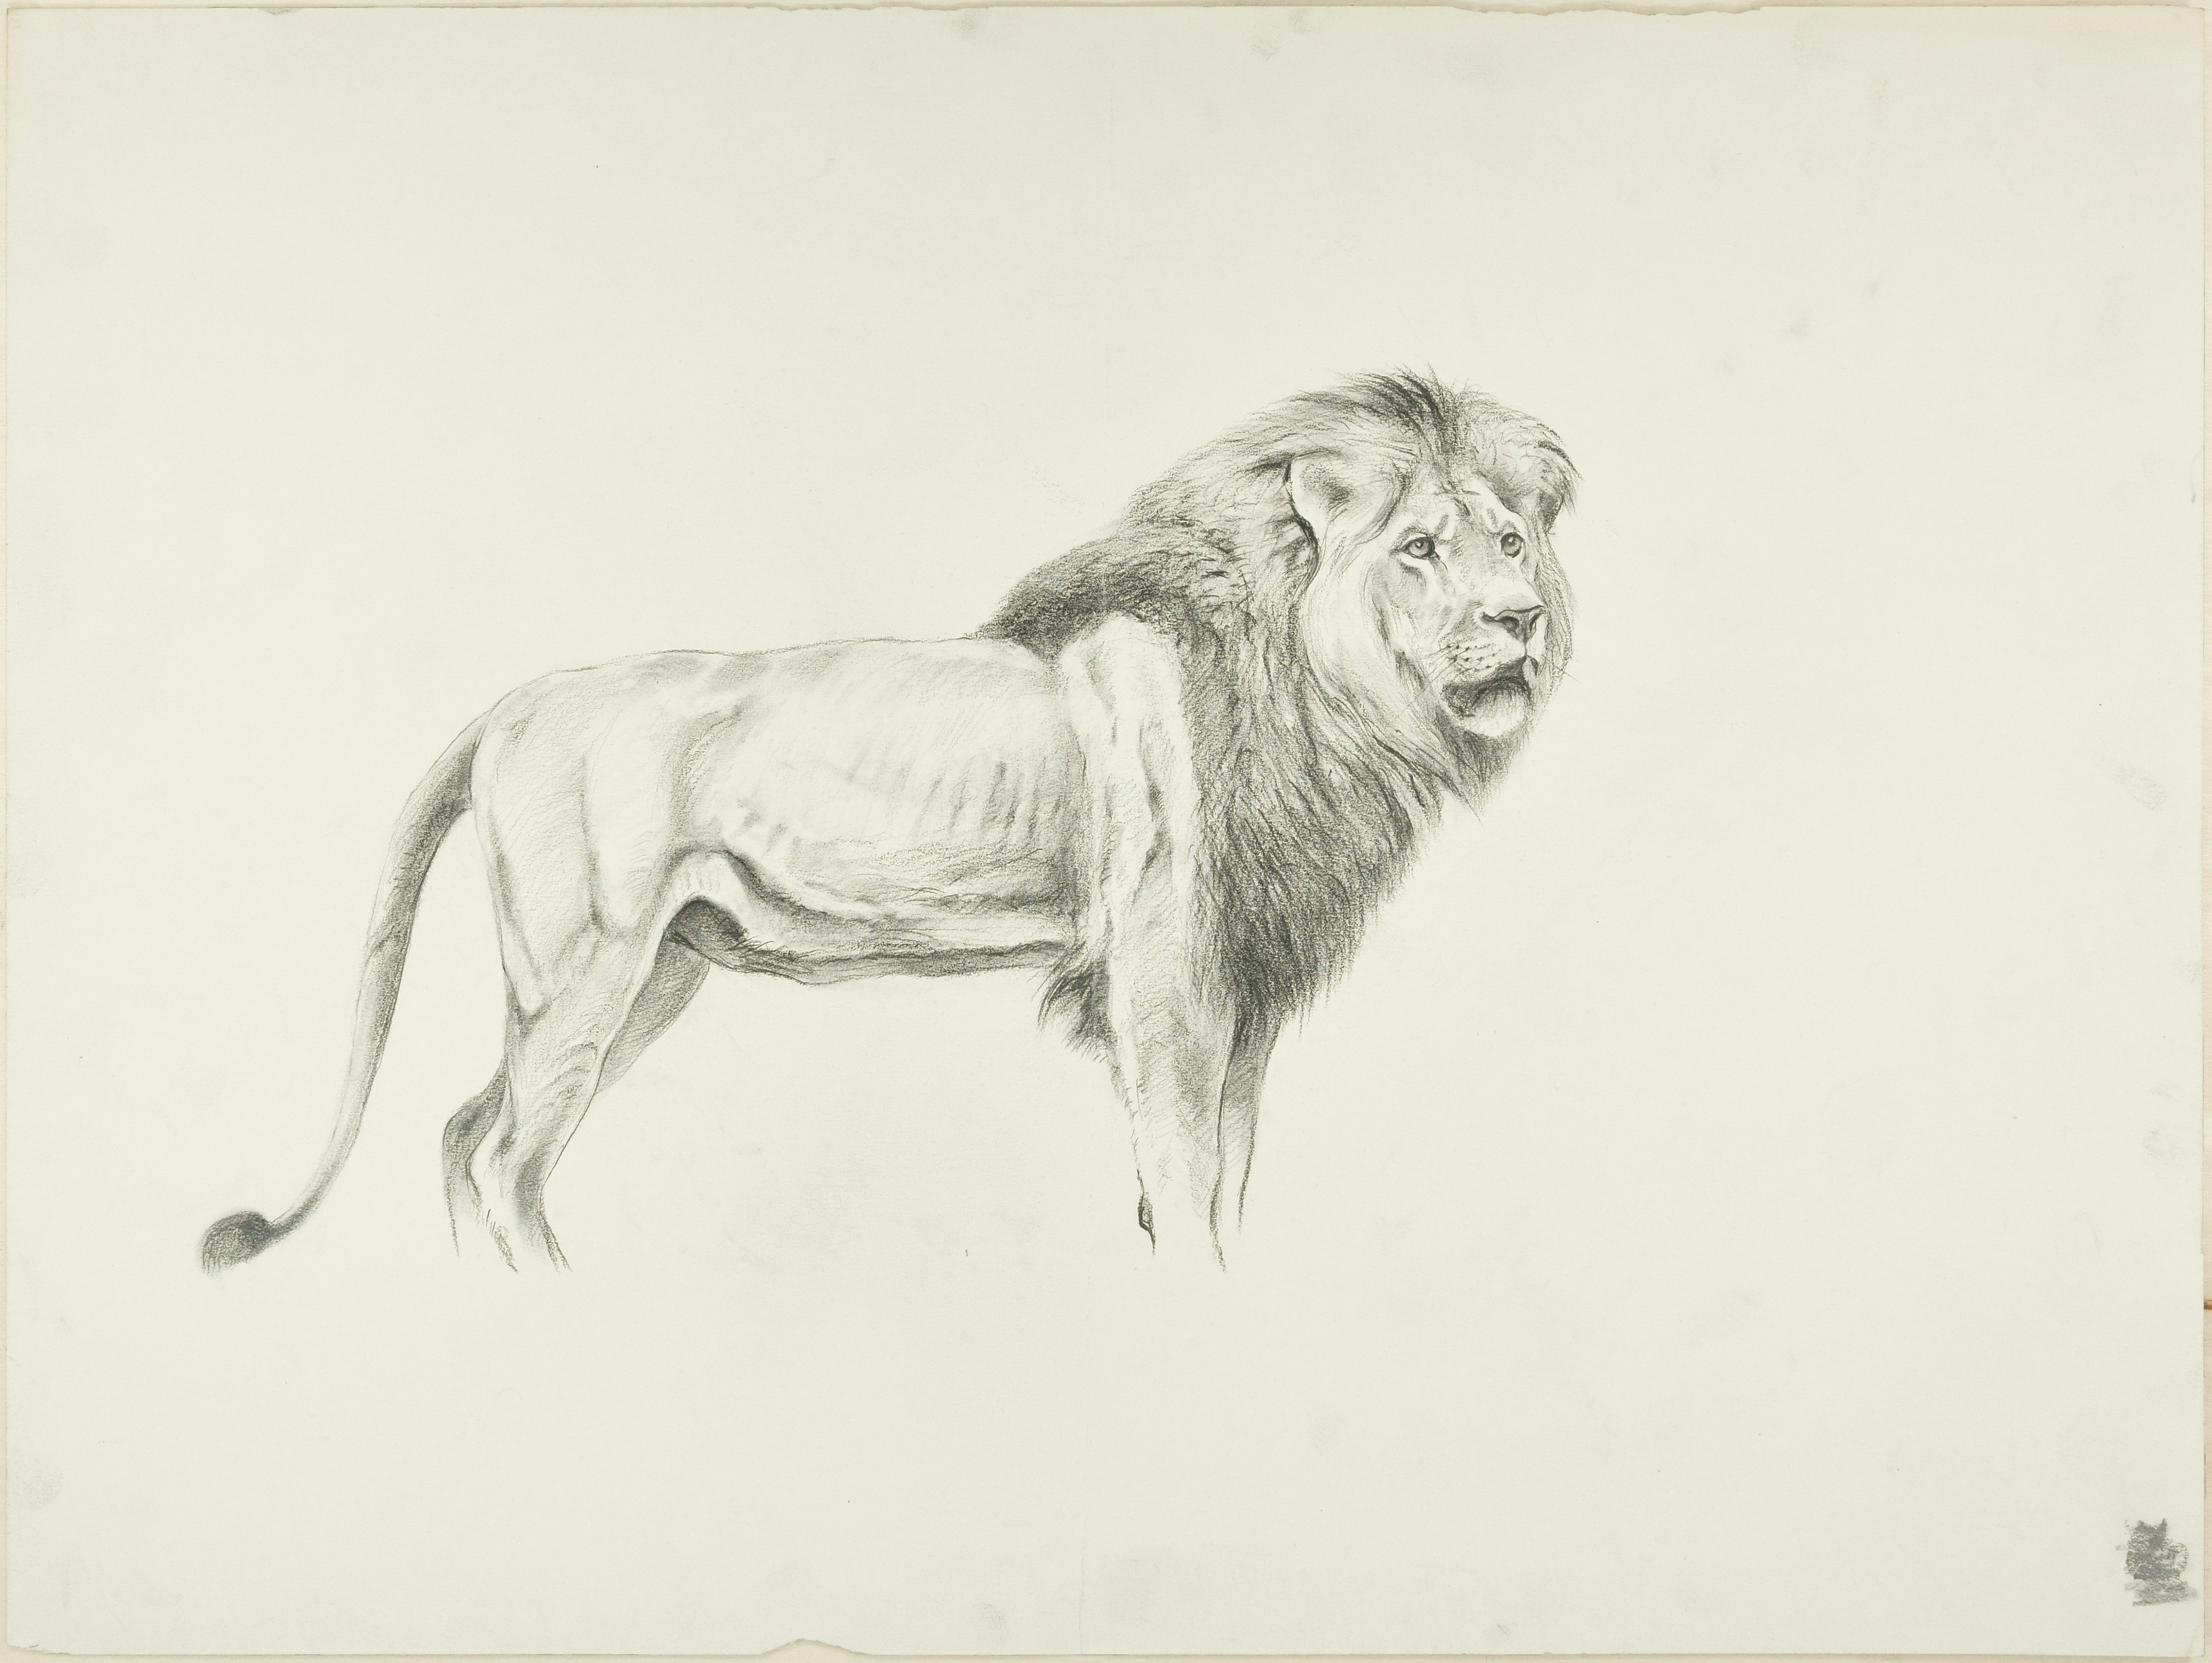 Profile of lion original pencil drawing by willy lorenz mid 20th century